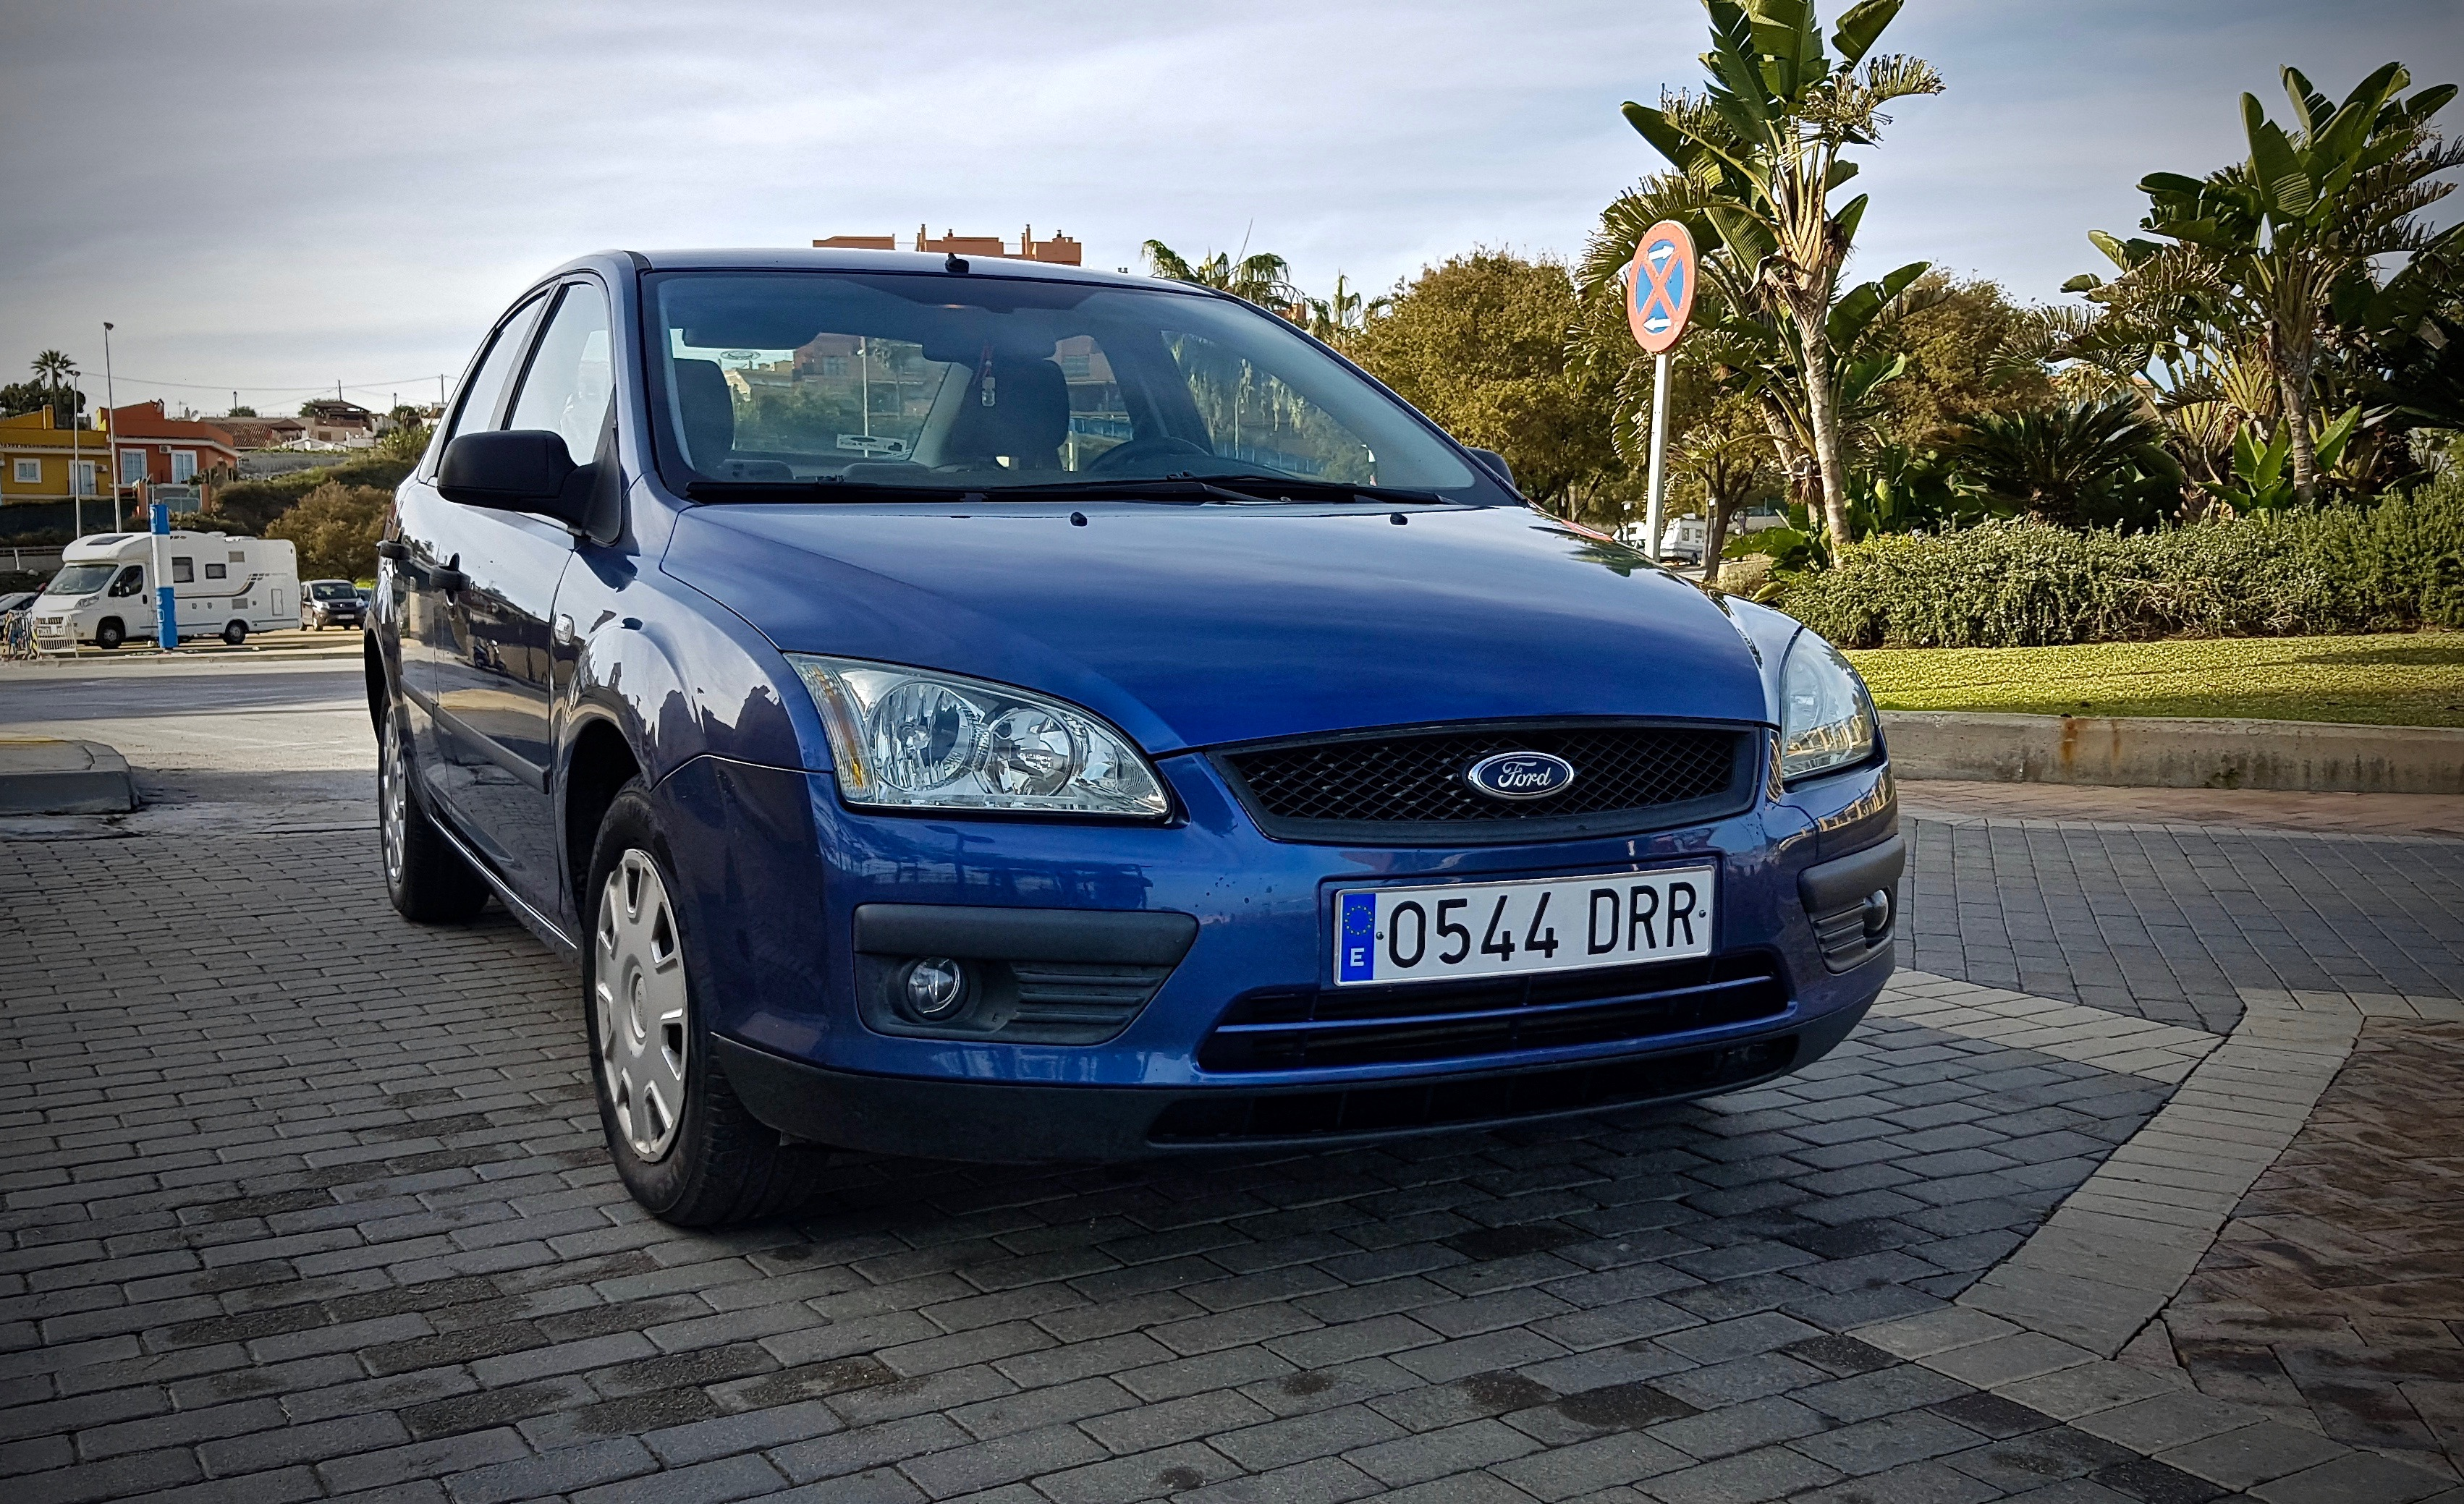 Ford Focus hb